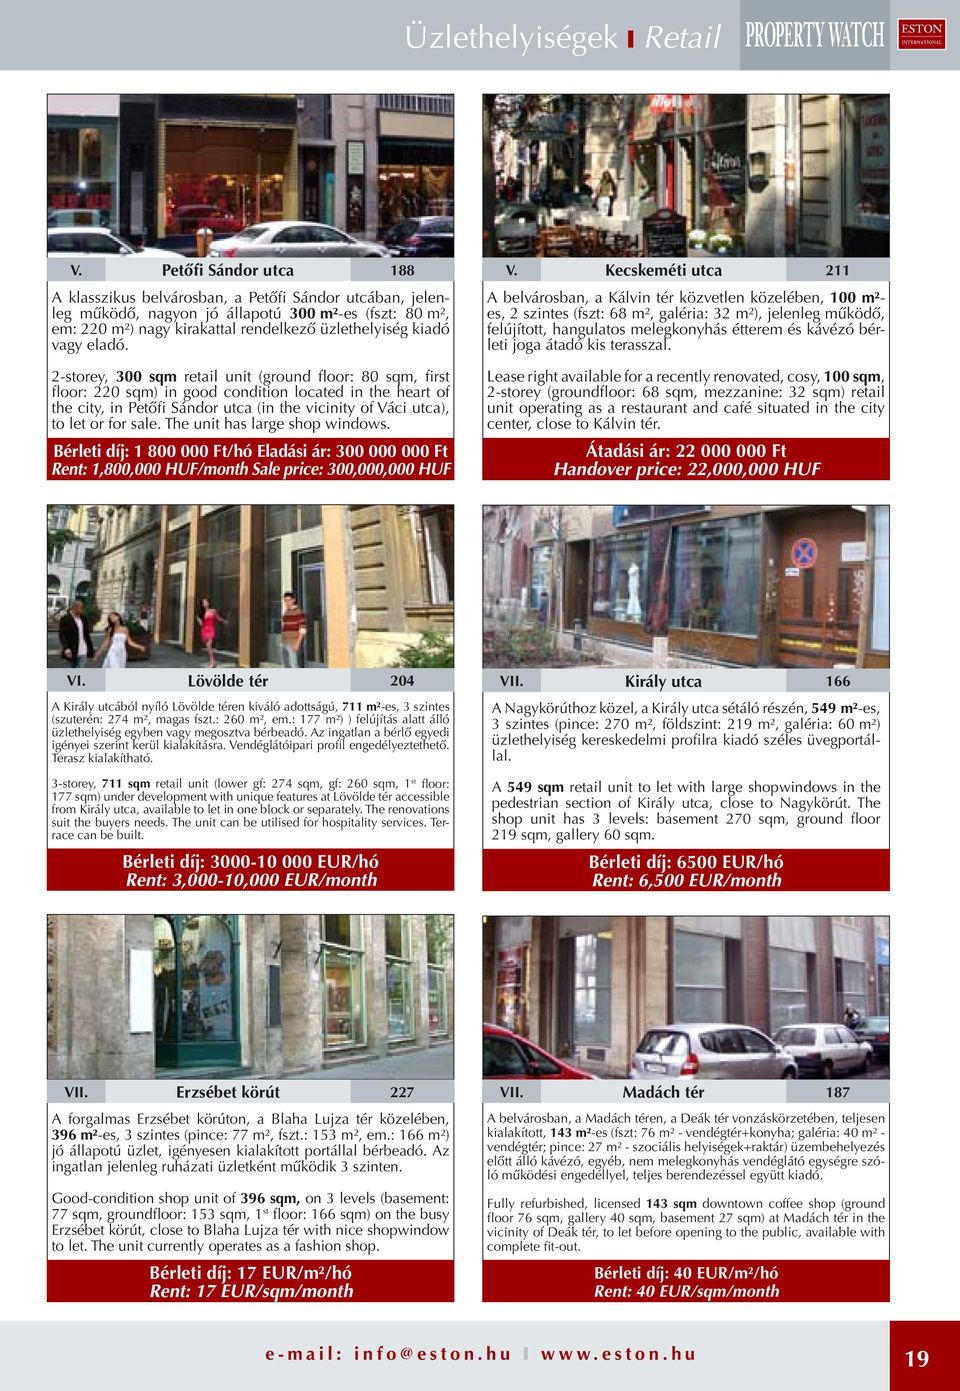 2-storey, 300 sqm retail uit (groud floor: 80 sqm, first floor: 220 sqm) i good coditio located i the heart of the city, i Petőfi Sádor utca (i the viciity of Váci utca), to let or for sale.